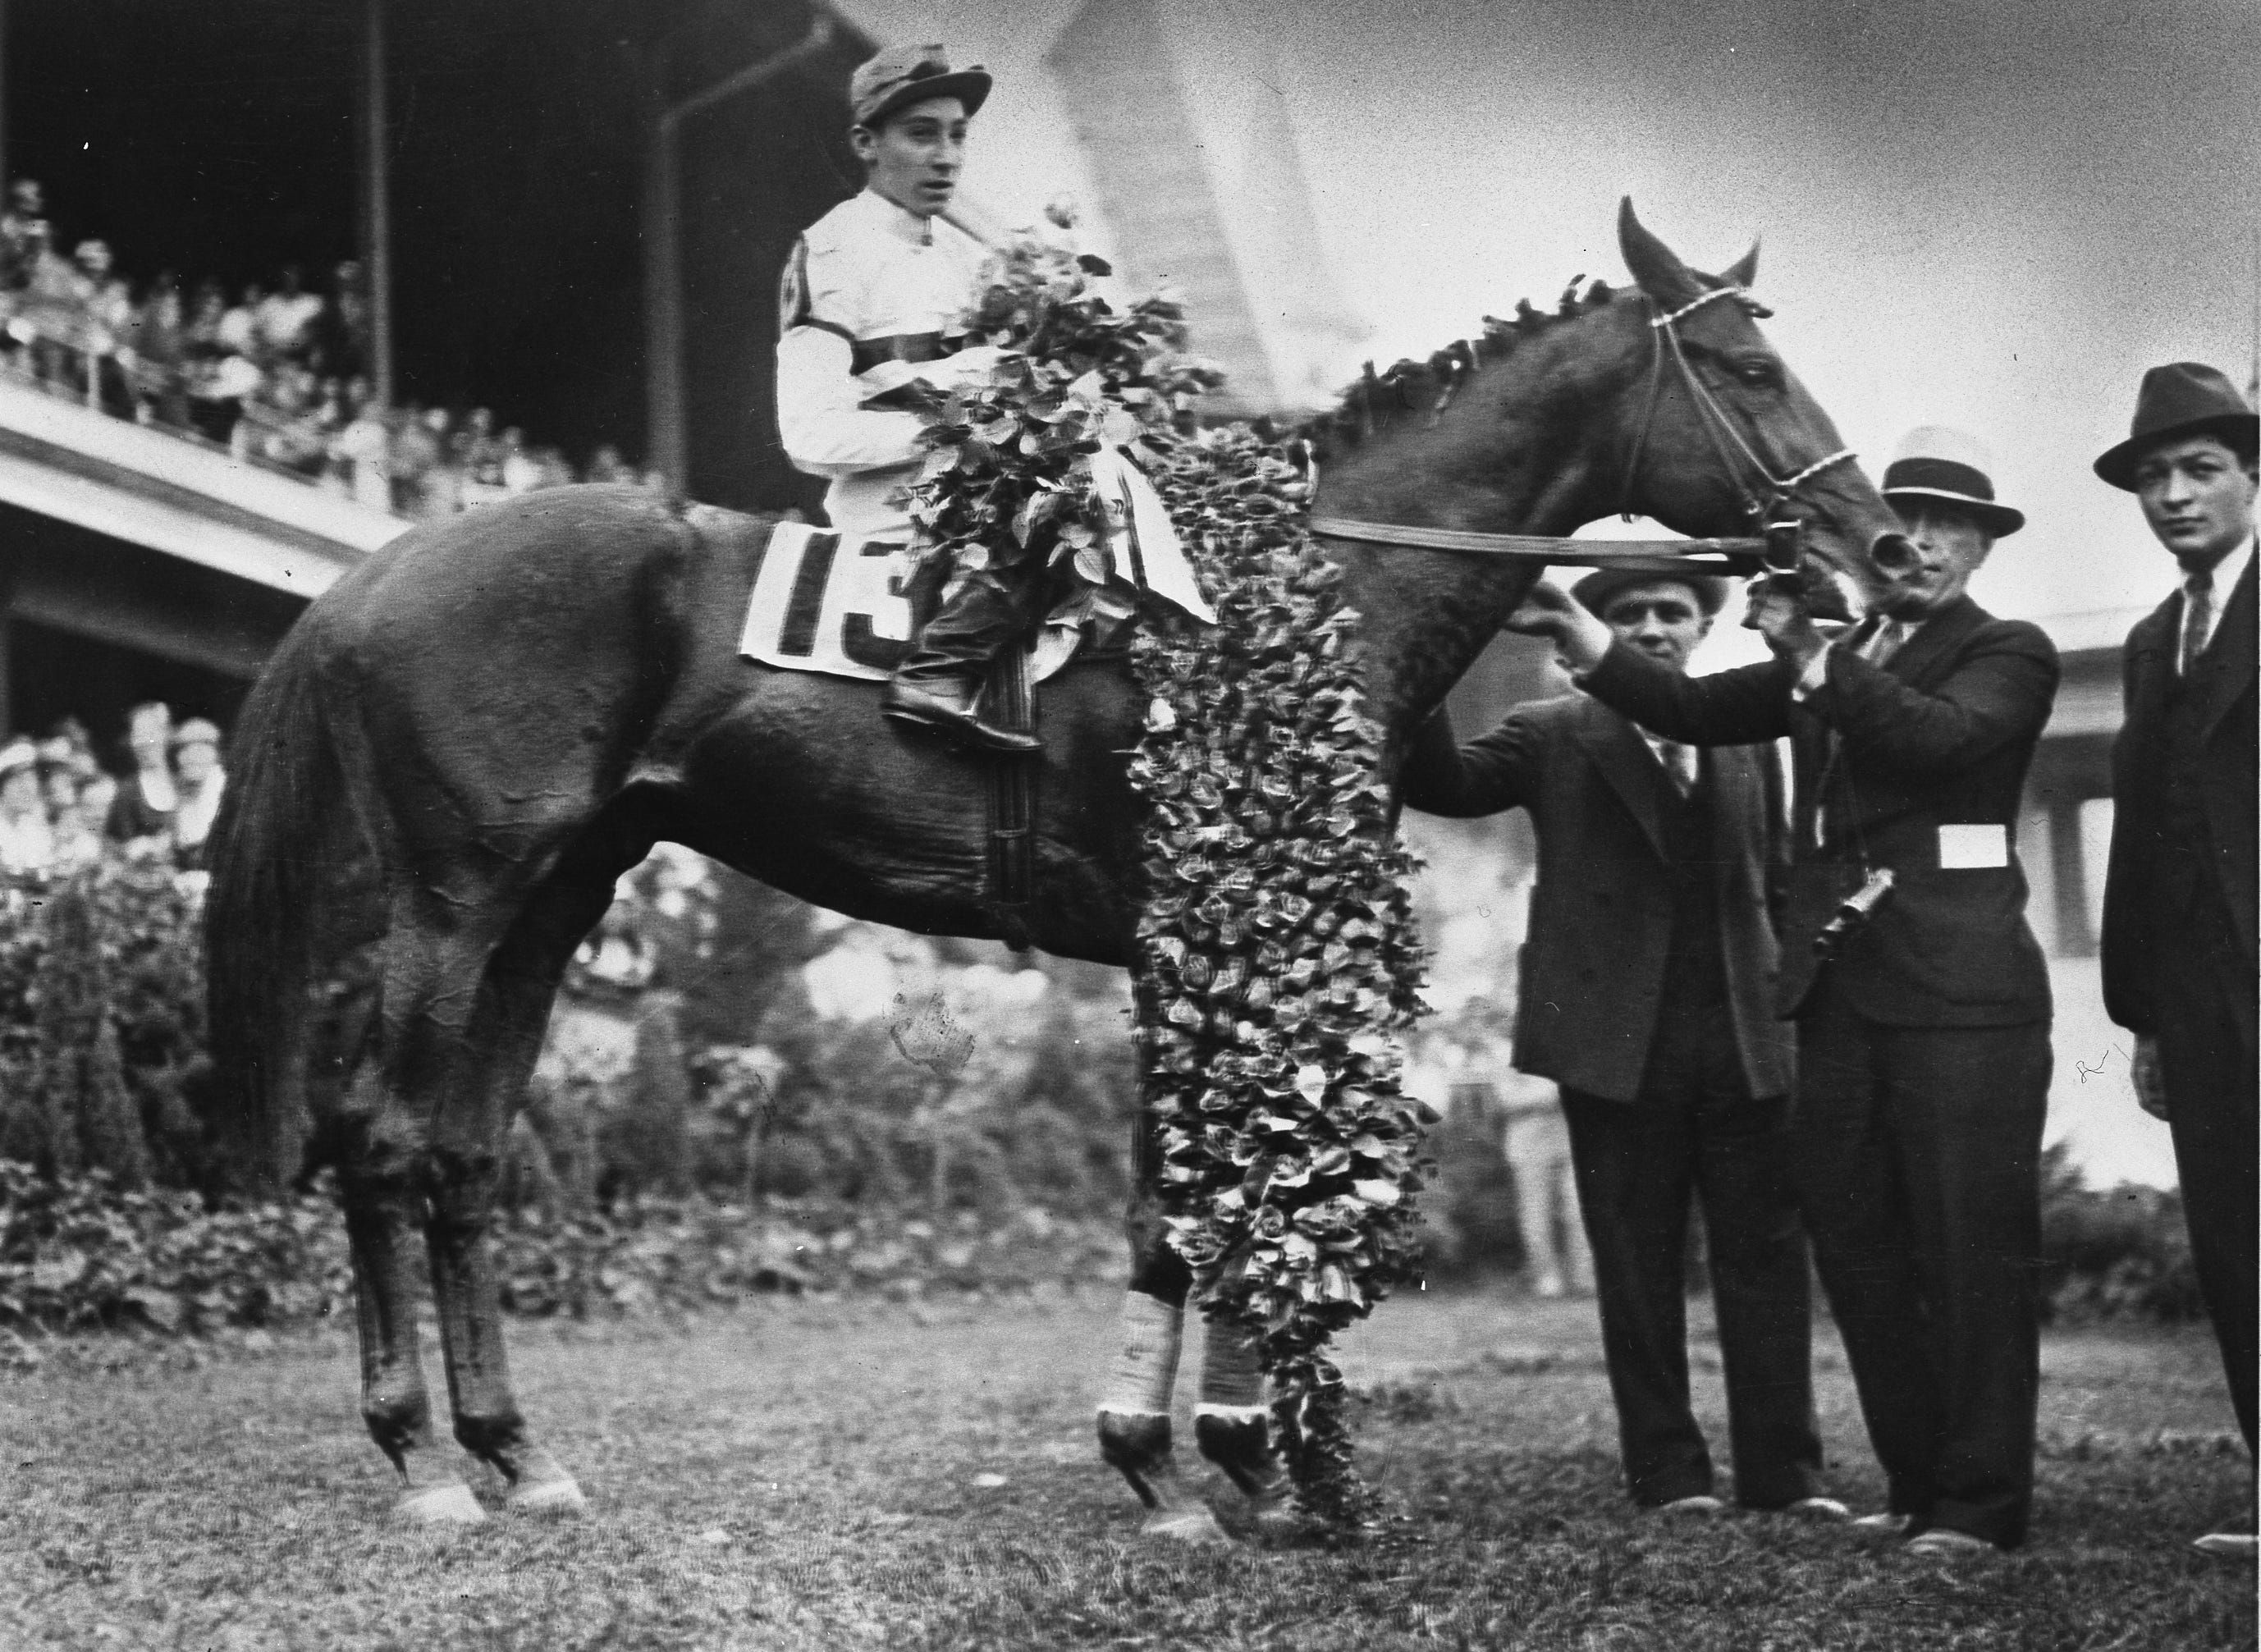 Burgoo King gets the roses in the 1932 Kentucky Derby. Photo by The Courier Journal May 7, 1932 Publication.